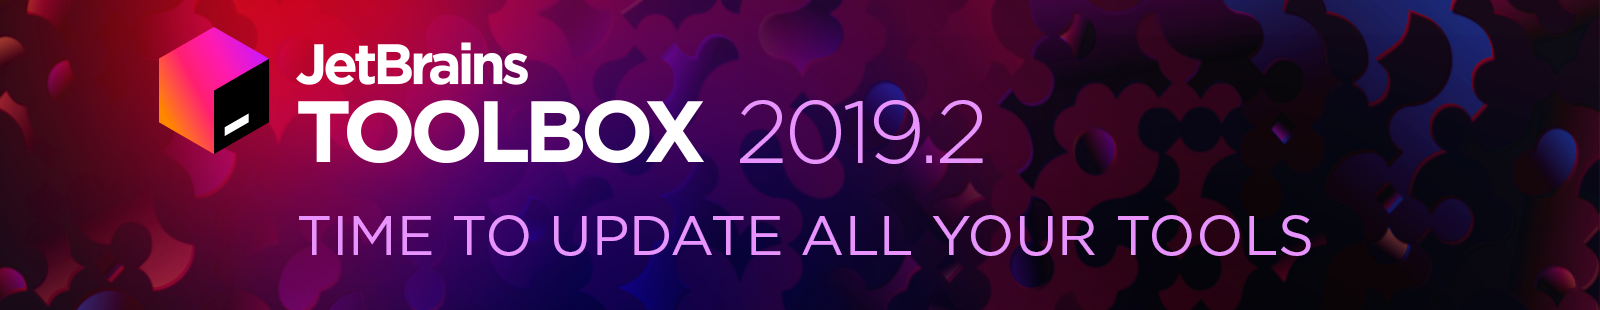 JetBrains Toolbox 2019.2リリース